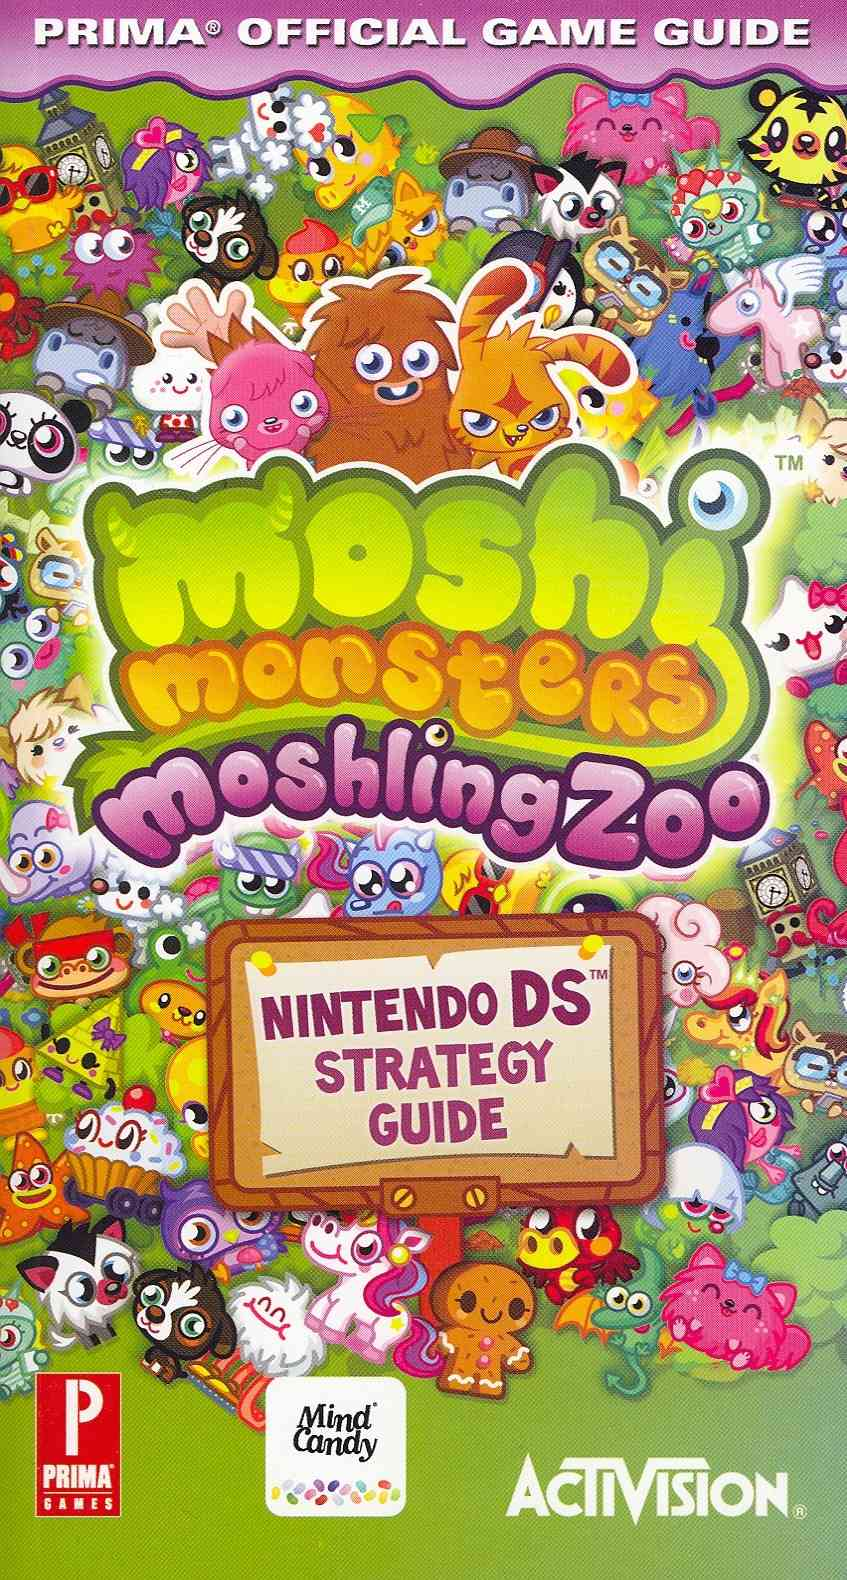 Moshi Monsters: Moshling Zoo: Prima Official Game Guide (Paperback)